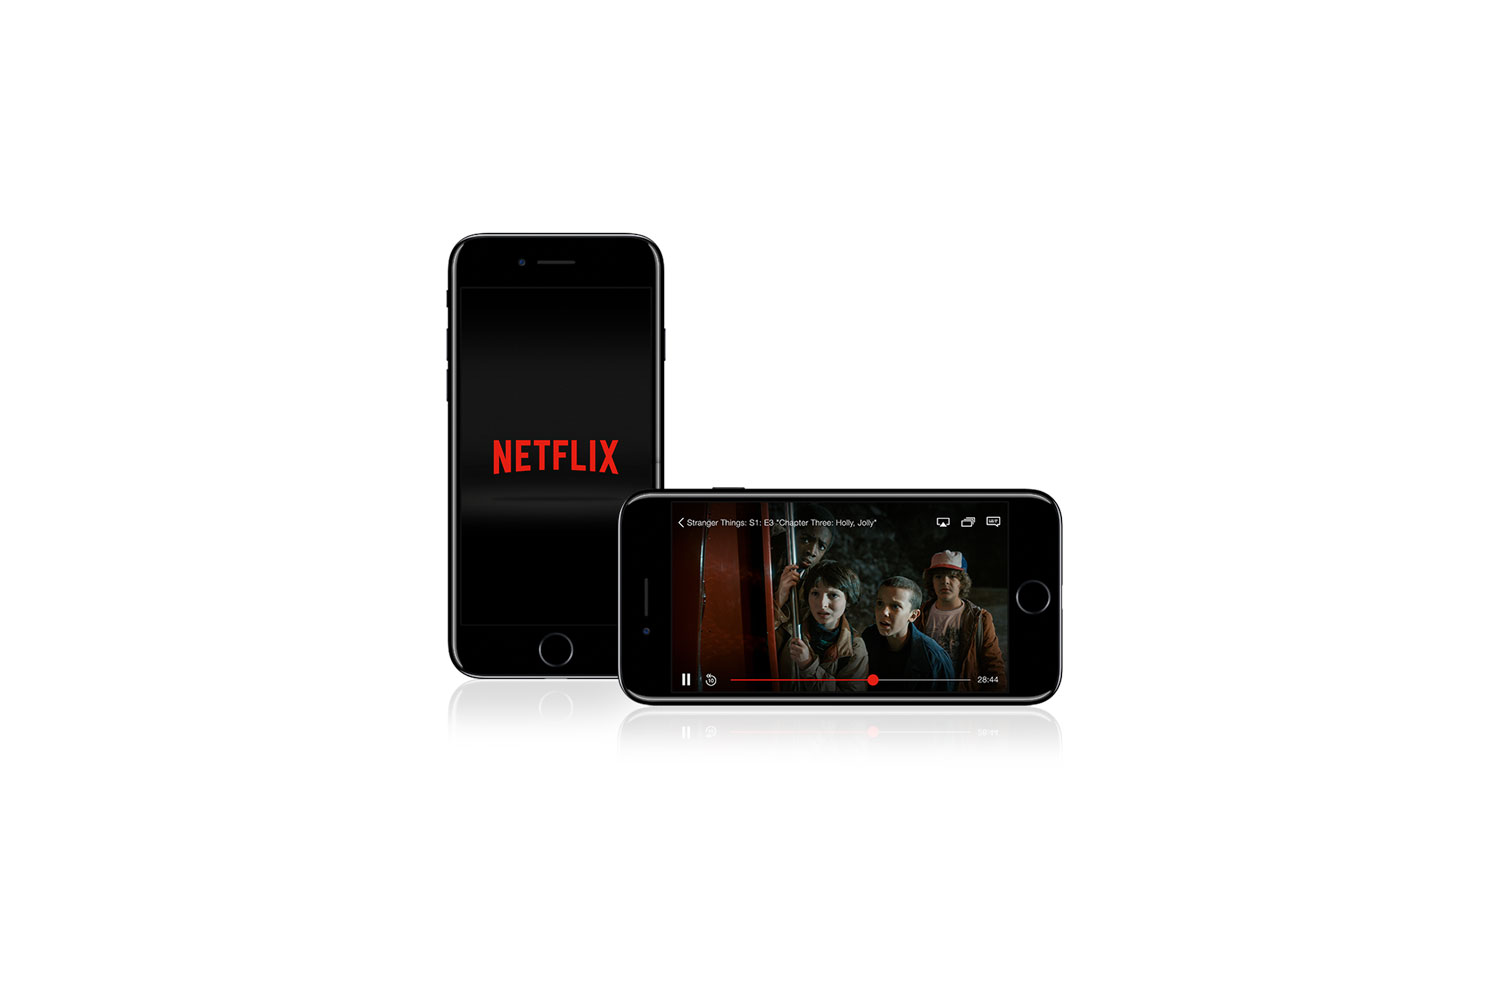 Netflix Streaming on iPhone